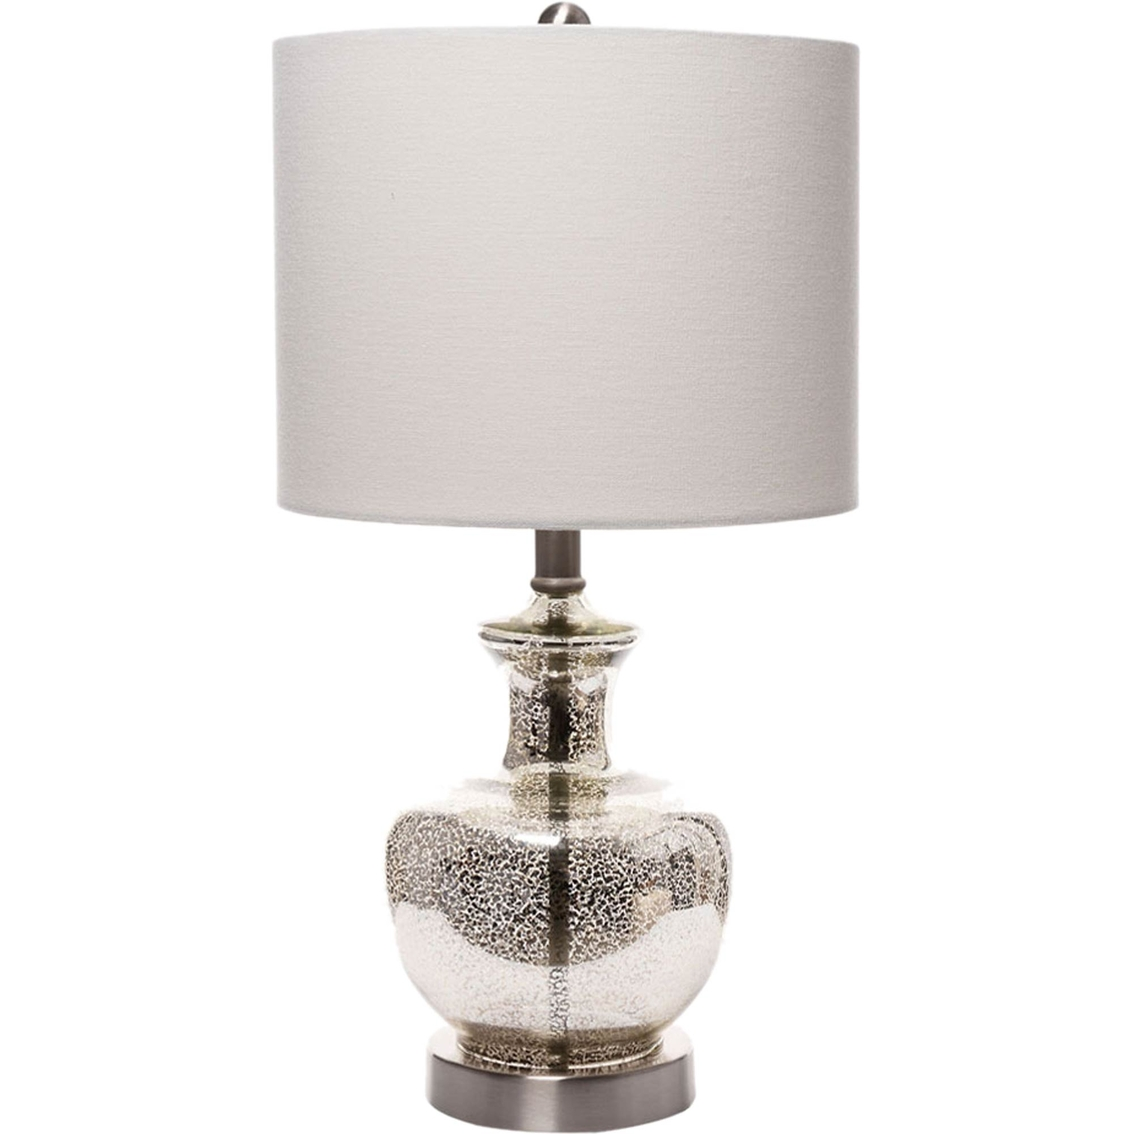 simply perfect silver mercury glass accent lamp table lamps home patio side pottery barn black coffee round drum folding nesting tables over the couch tool cabinet high bar and